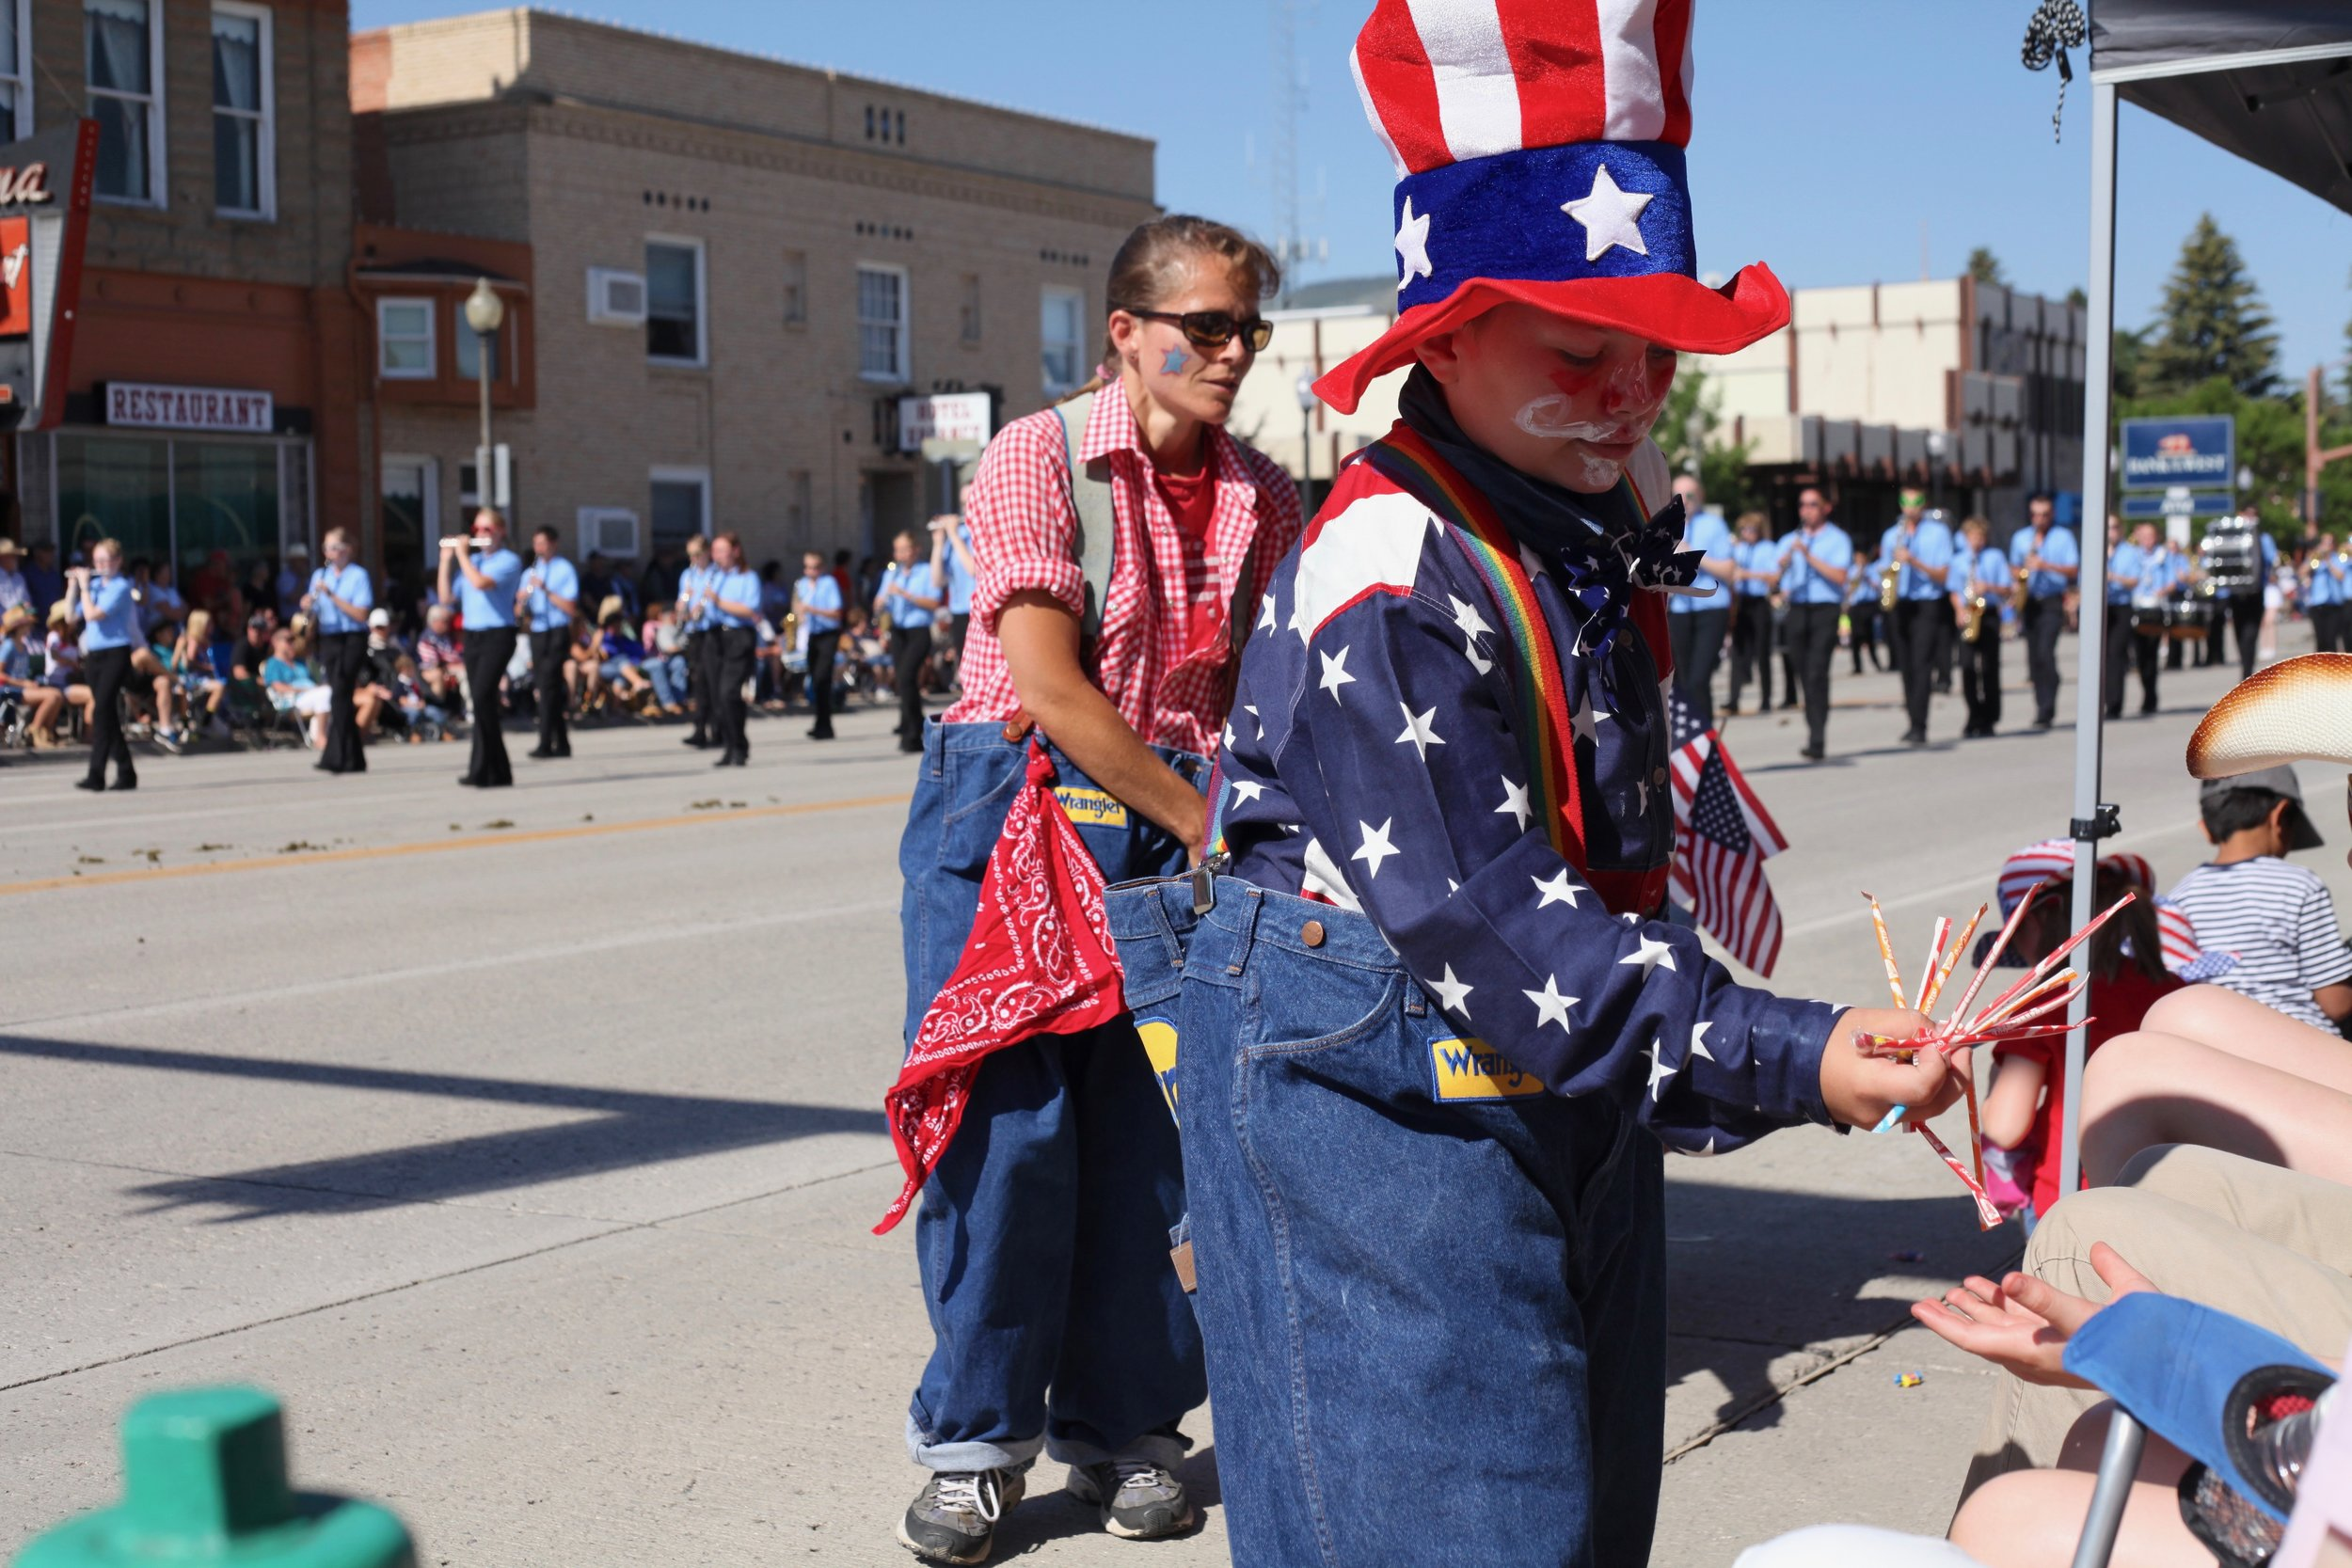 4th of July parade in Cody, Wyoming